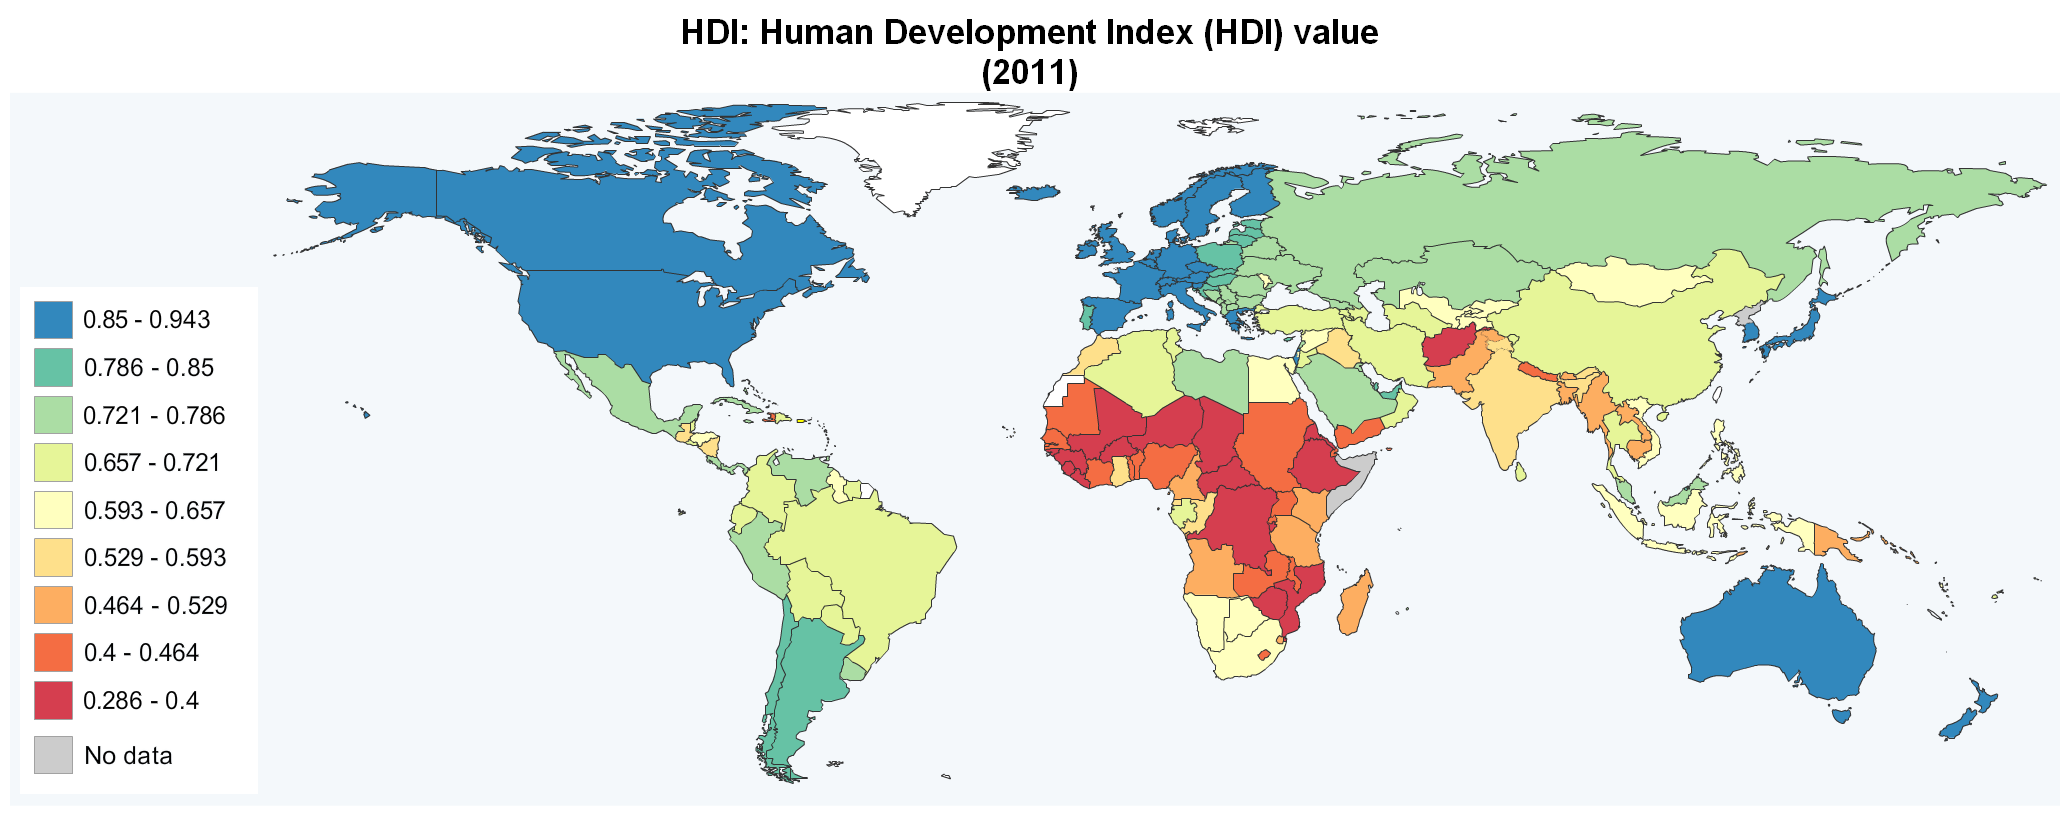 Entitled 'Sustaining Human Progress: Reducing Vulnerabilities and Building Resilience', the Human Development Report provides a fresh perspective on vulnerability and proposes ways to strengthen resilience. The report also contains the Human Development Index (HDI).